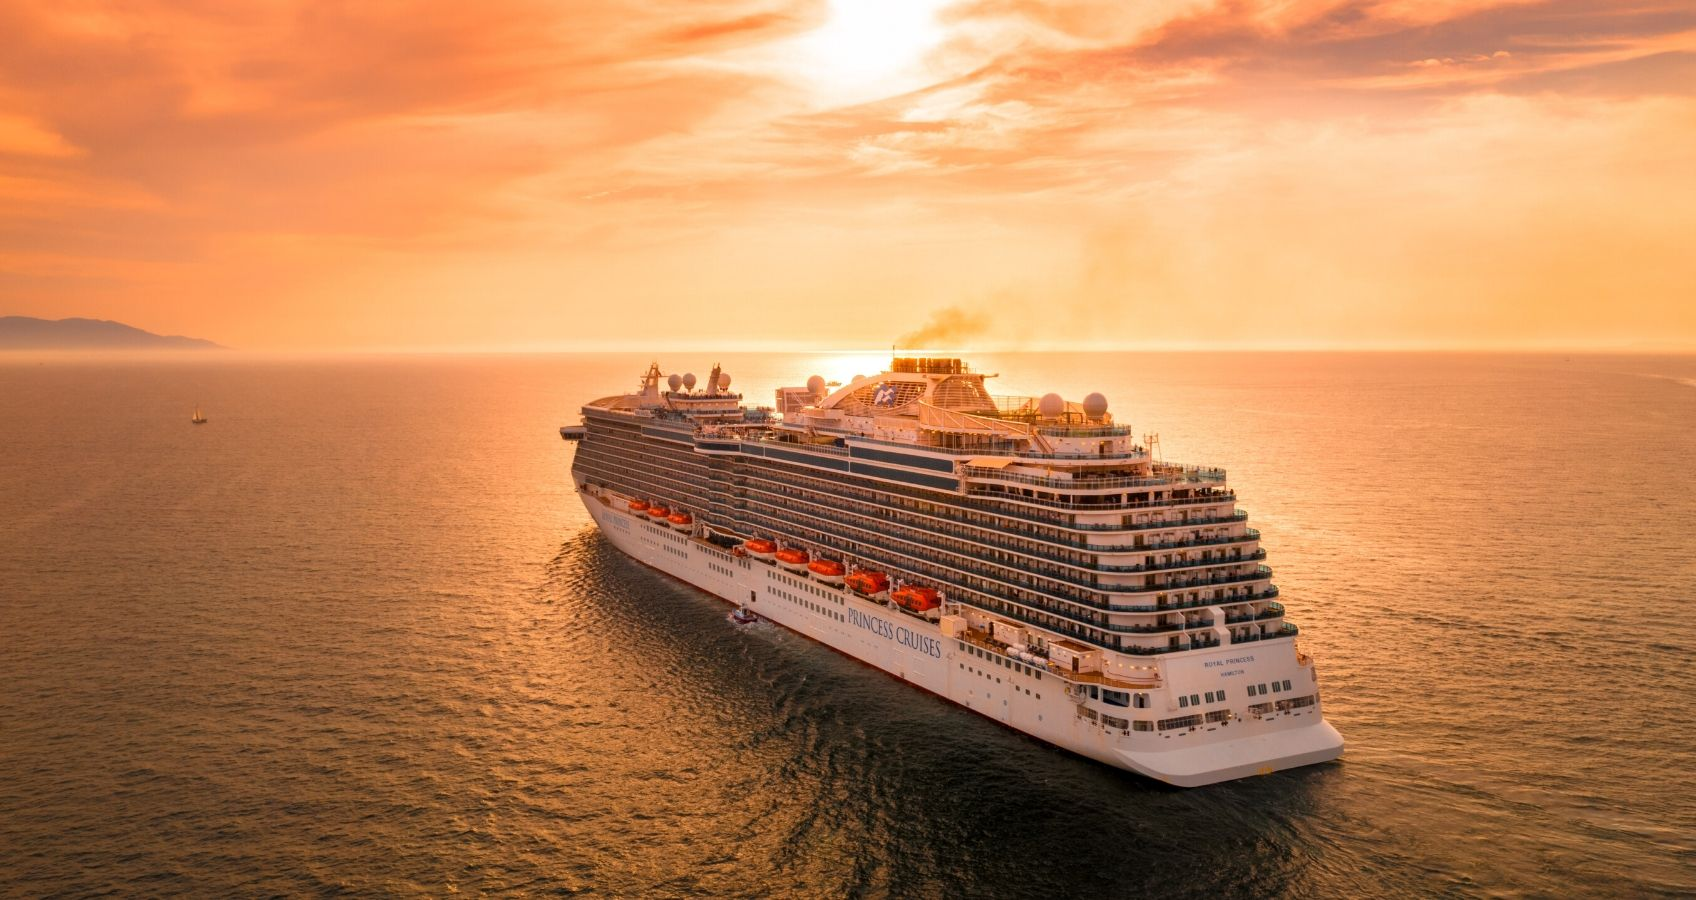 Planning a Cruise Wedding in the Future? 6 Things Wedding Cruisers Should Know